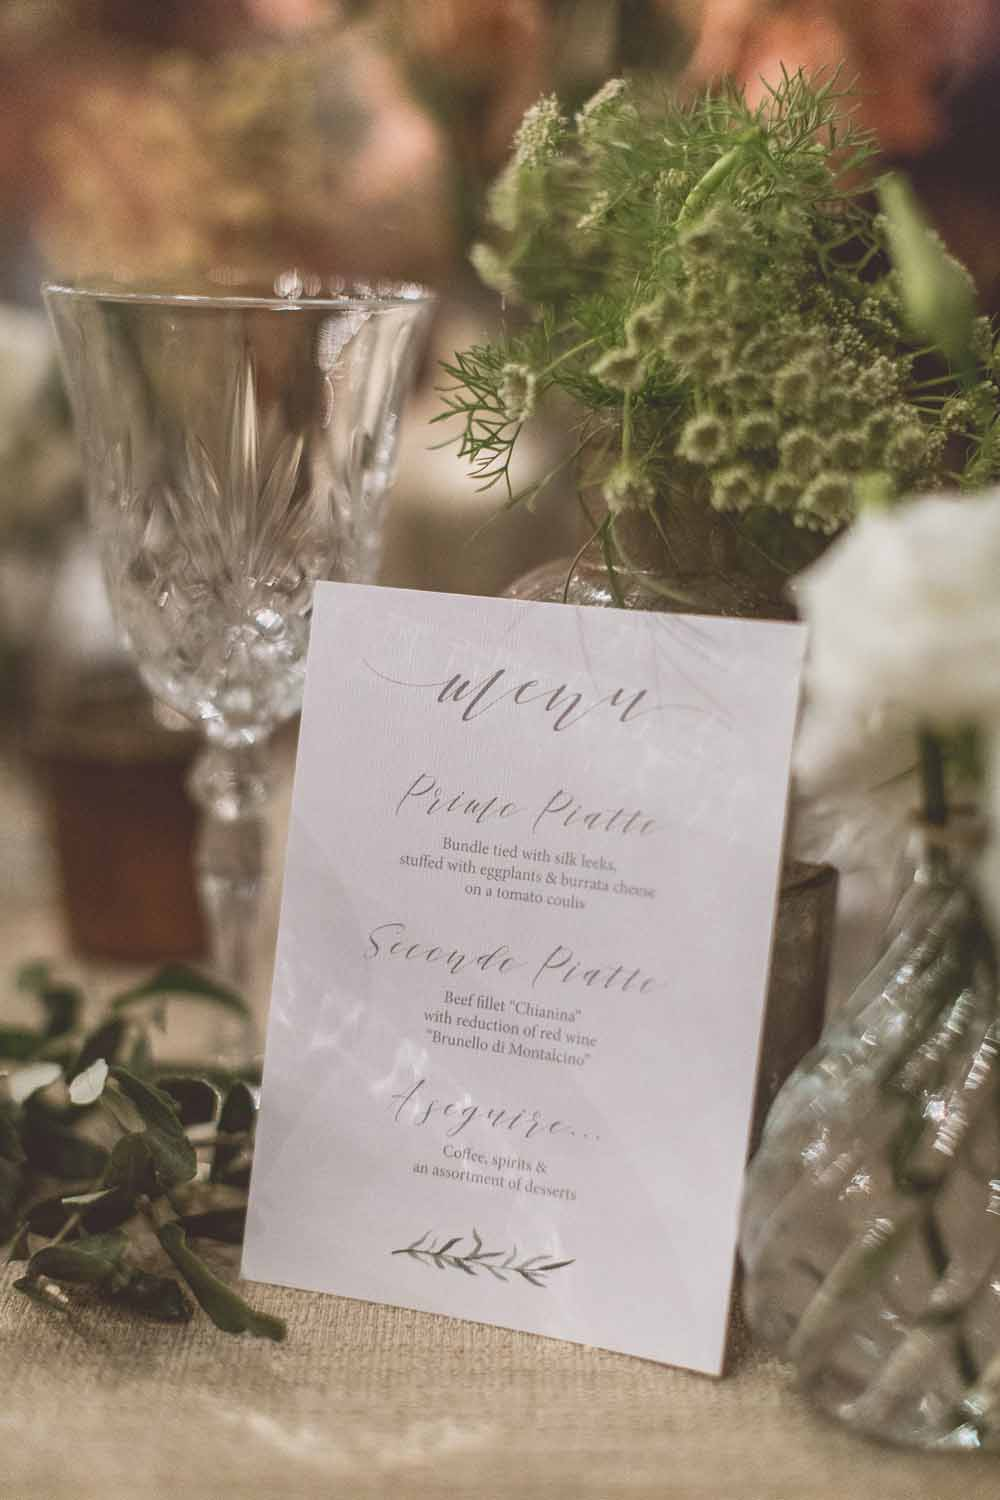 Rustic Hilltop Wedding Flowers Tuscany Italy Passion for Flowers Karen Morgan171